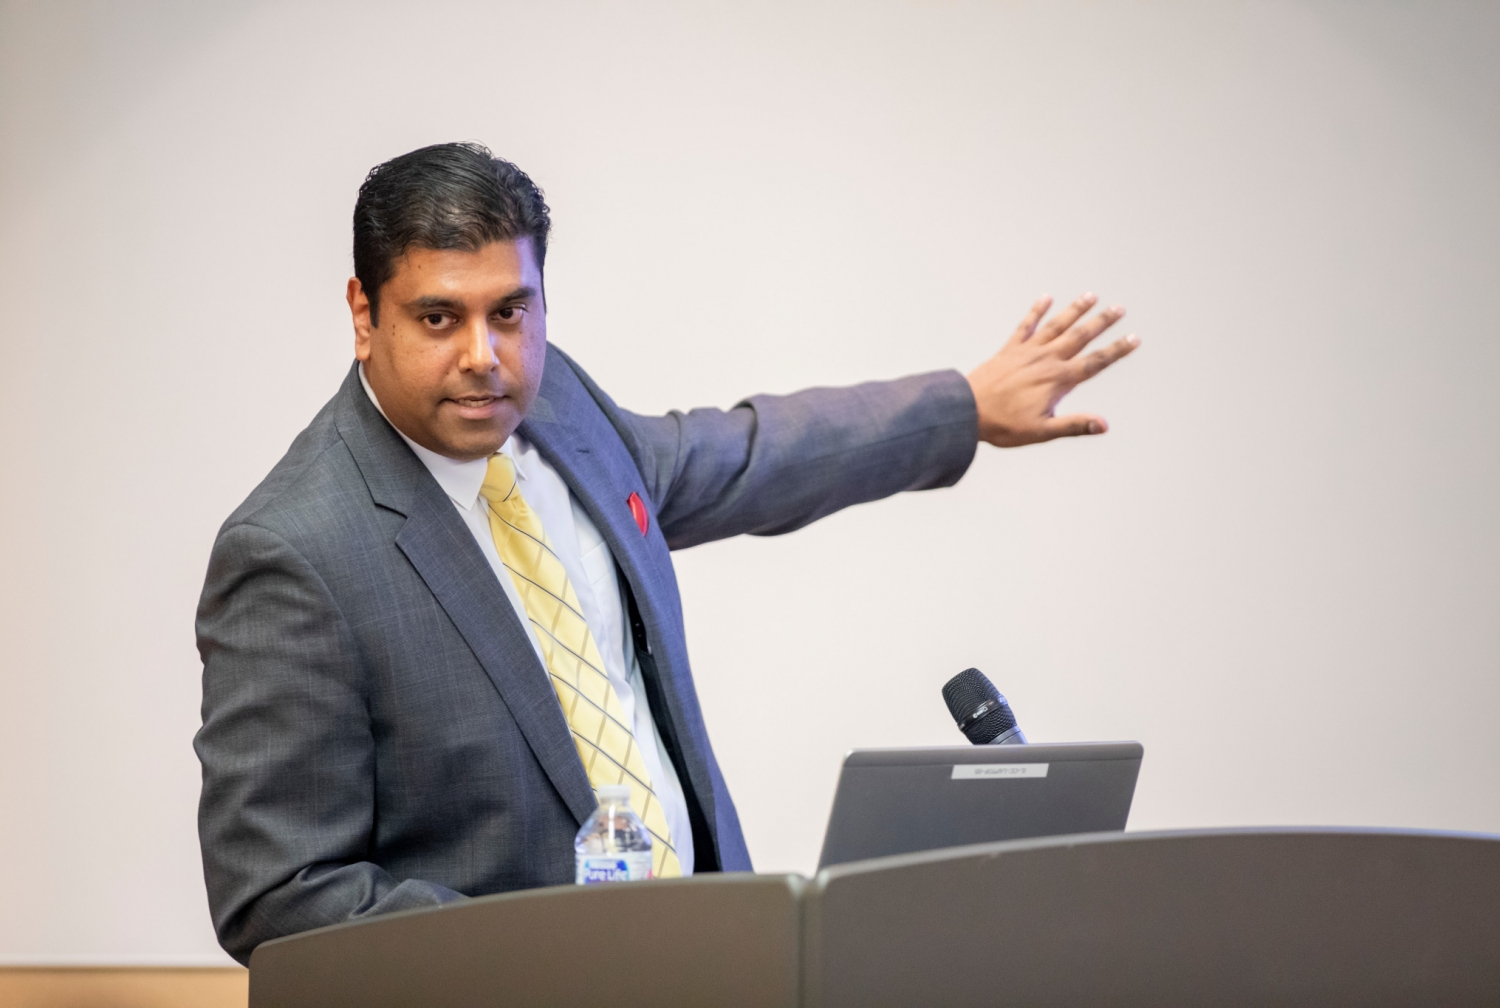 Dr. Sumit Narayan NiogiLeading a new era in magnetic resonance imaging research capabilities at Cornell, Dr. Sumit Narayan Niogi, assistant professor of radiology and clinical associate in radiology at Weill Cornell Medicine, has been named director of the Cornell Magnetic Resonance Imaging Facility.